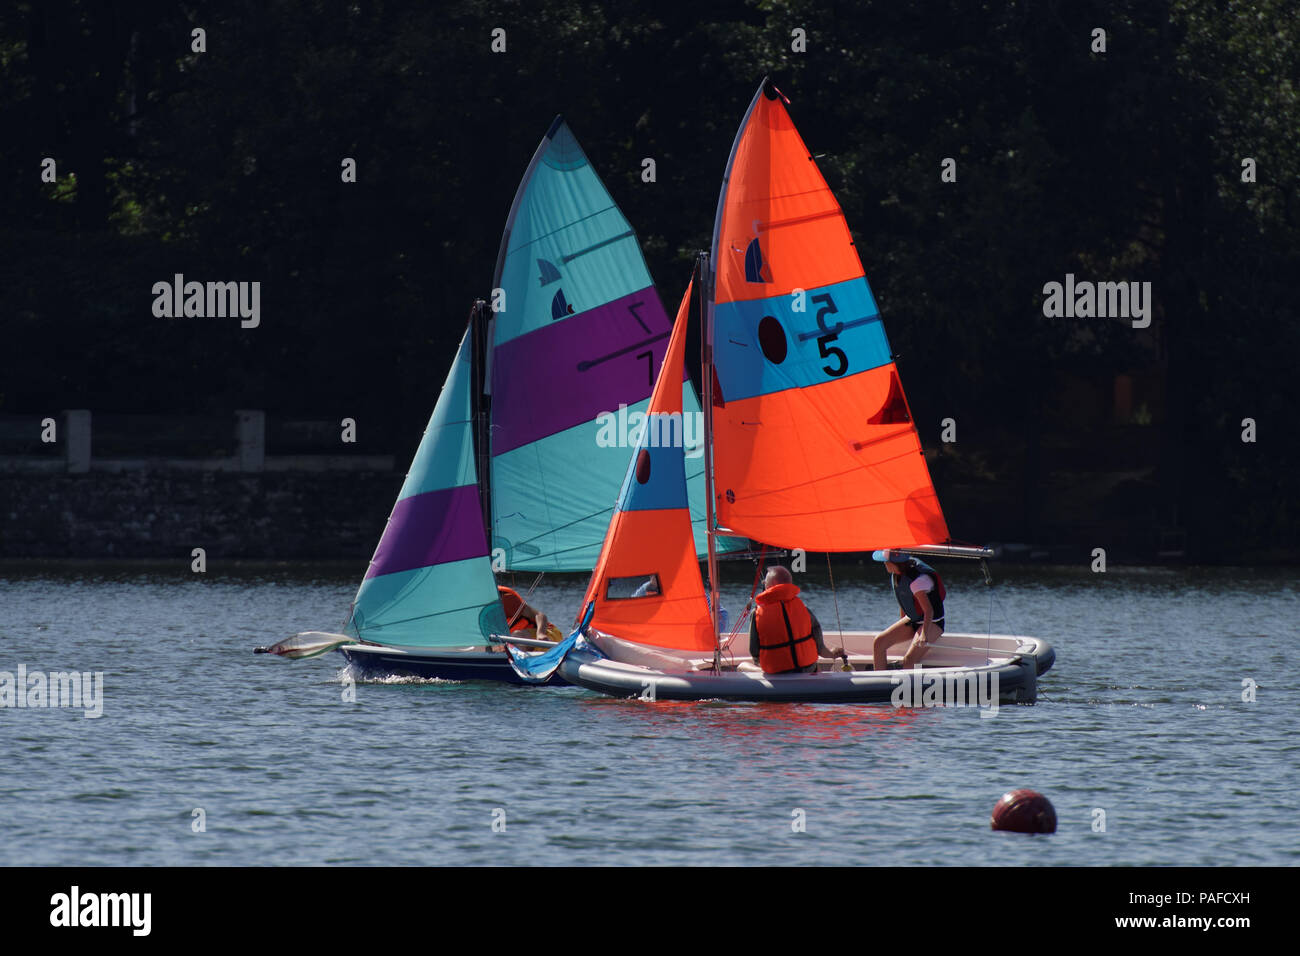 St. Petersburg, Russia - August 12, 2017: Amateur sailing competitions on Upper Suzdal lake. The competitions aimed to popularize the healthy lifestyl - Stock Image